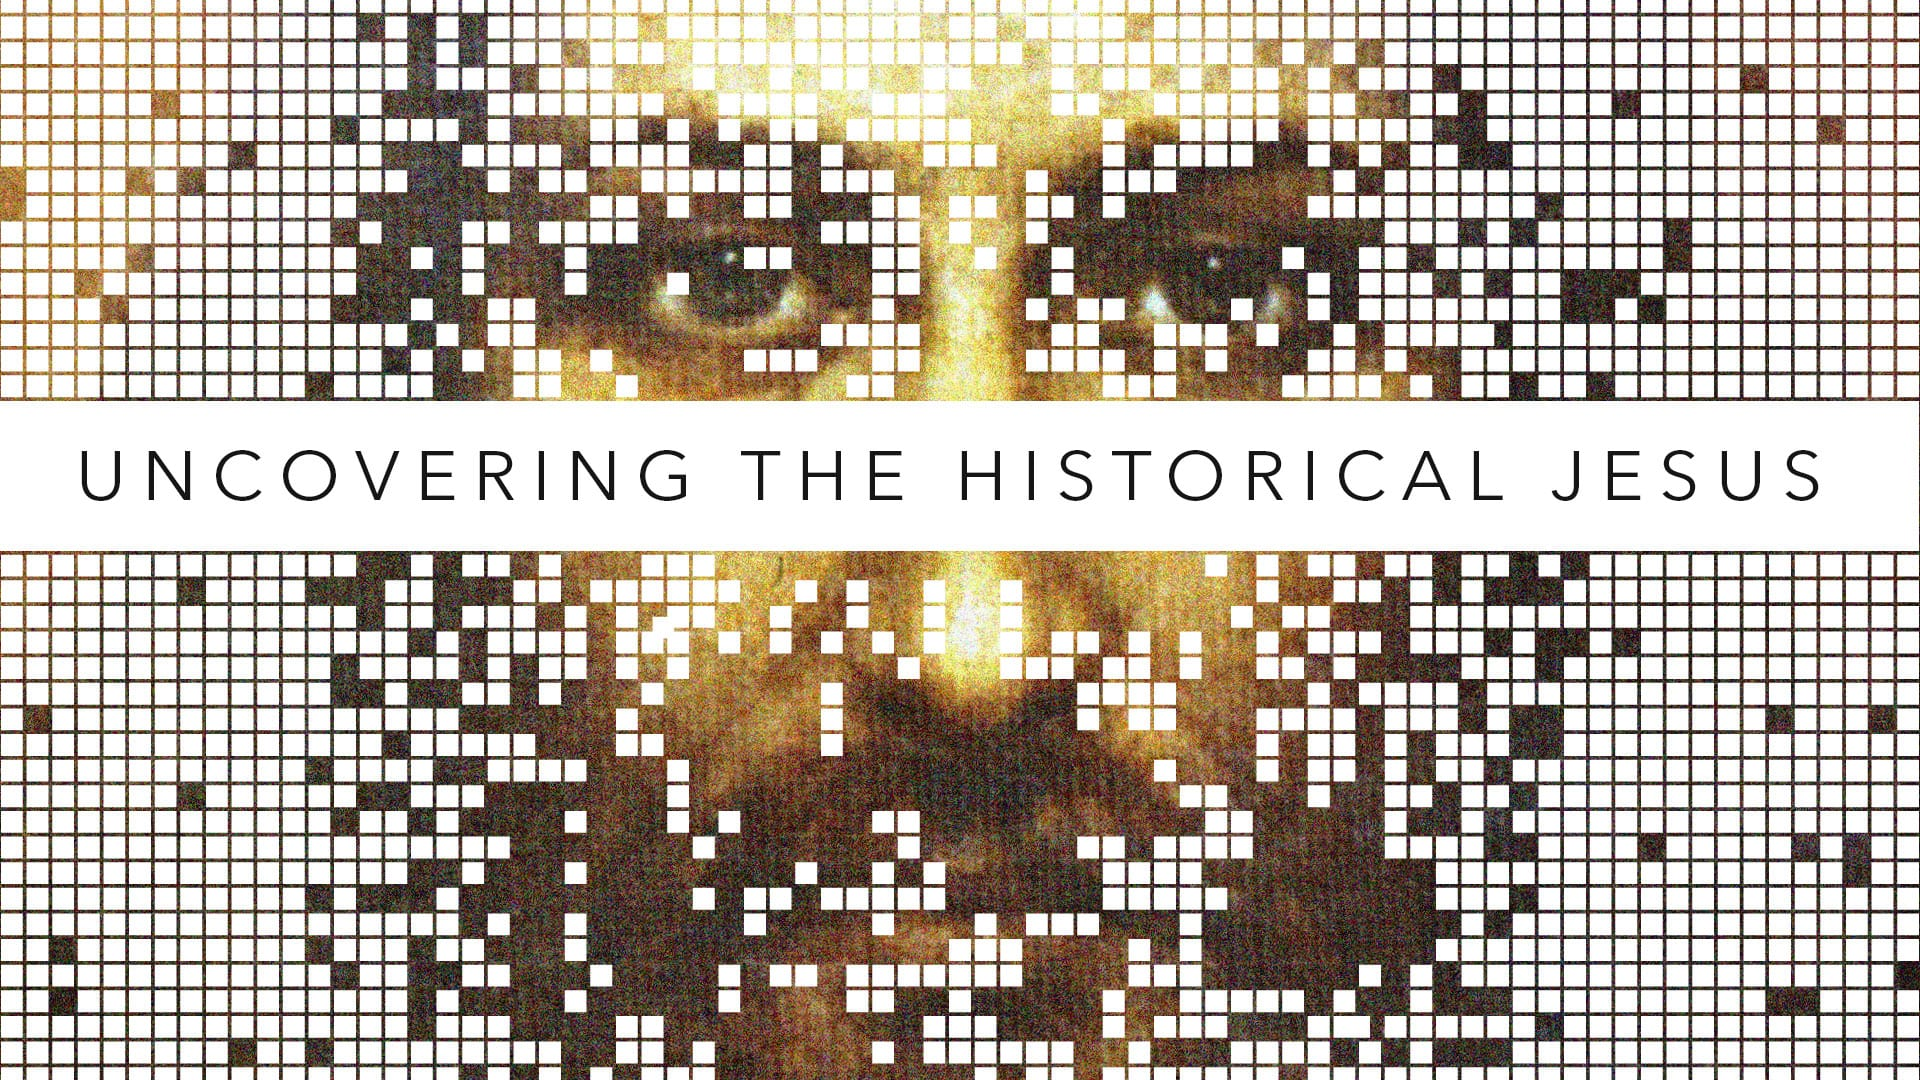 Uncovering the Historical Jesus